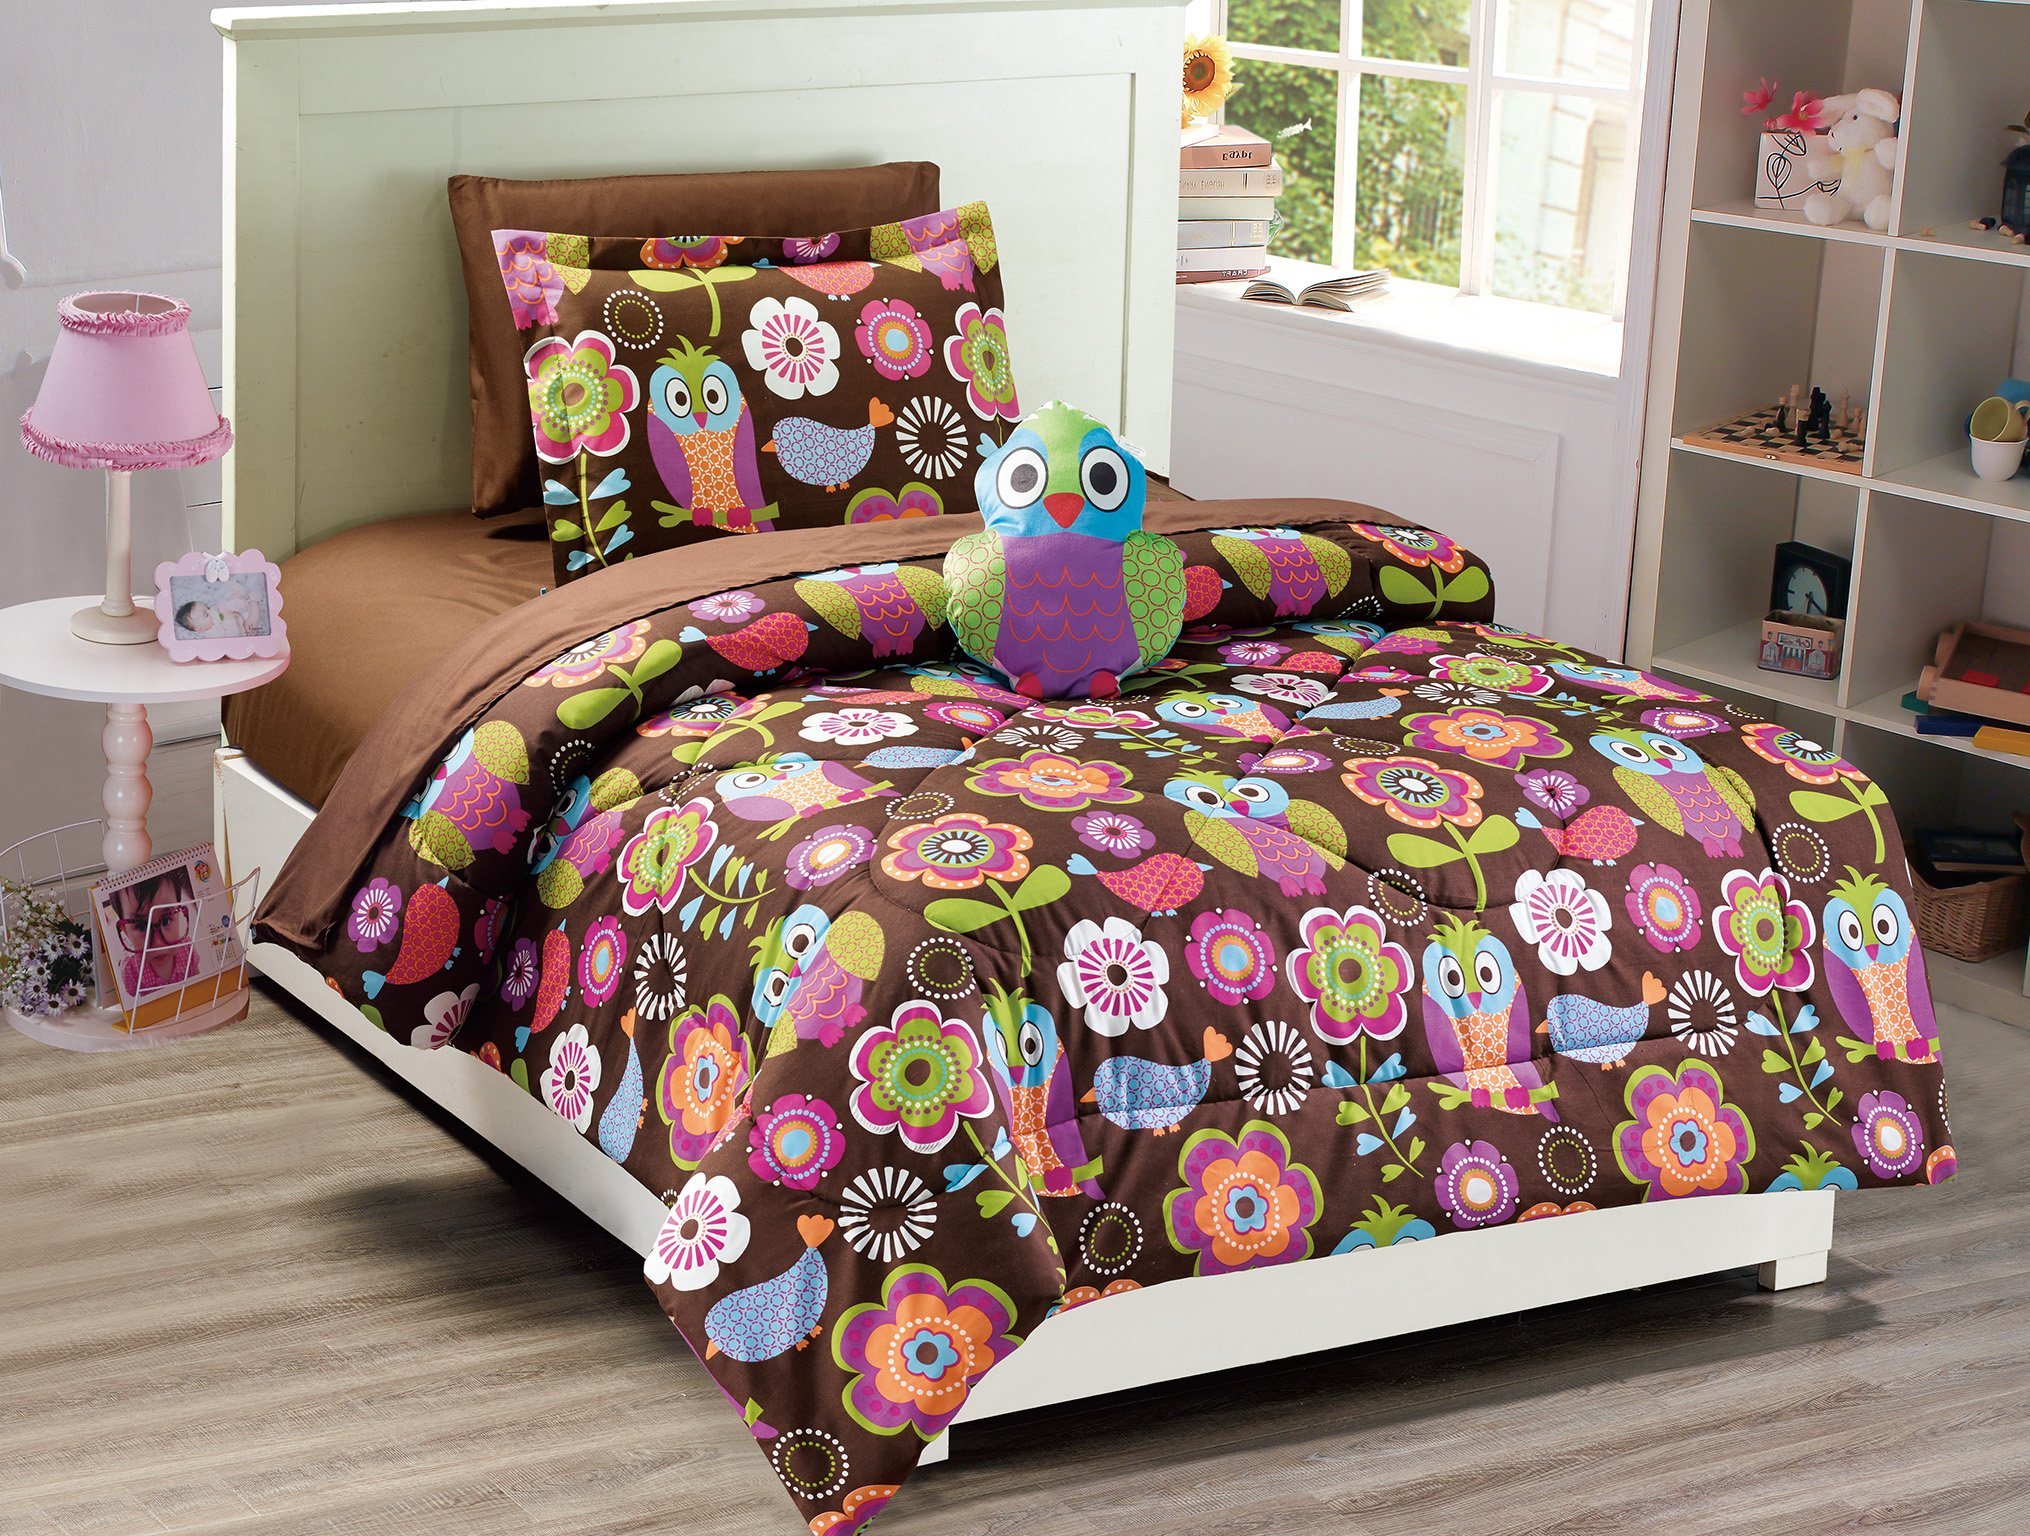 Mk Collection Owl Brown Purple Pink Green White 6 pc c Comforter And sheet set With Furry Buddy Included New Twin Size